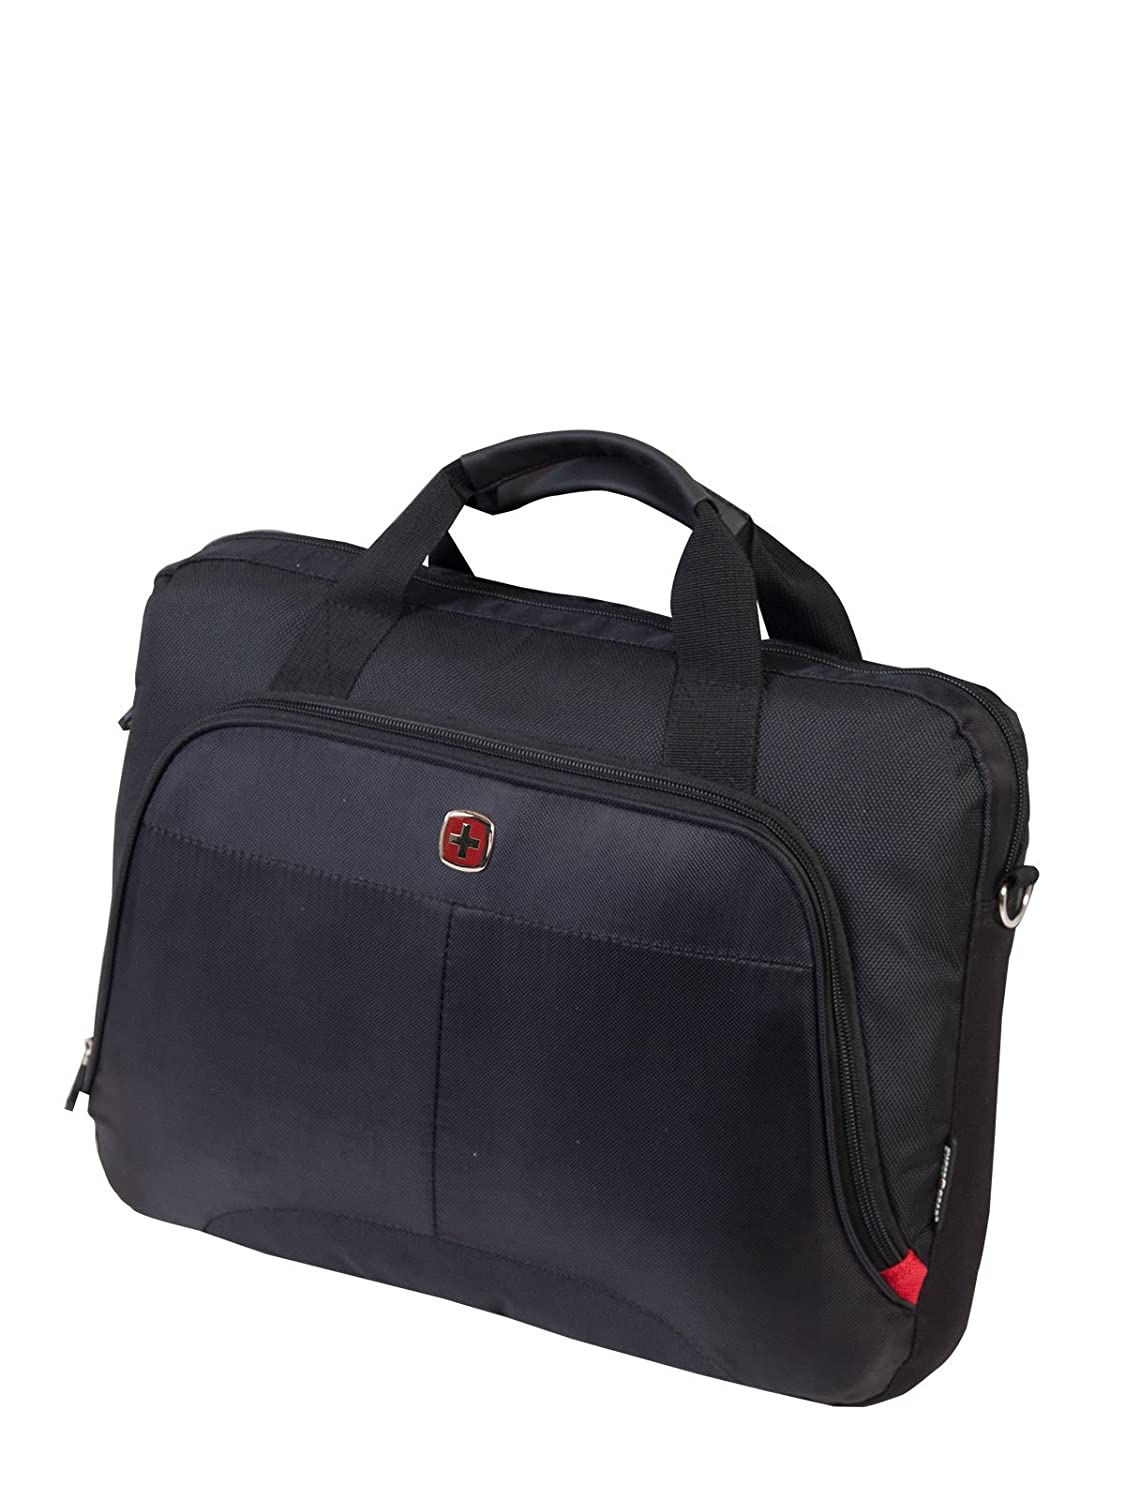 Swiss Gear Top Load Laptop Bag with Tablet Pocket, International Carry on, 15.6-Inch, Black Holiday Luggage SWA0955D009